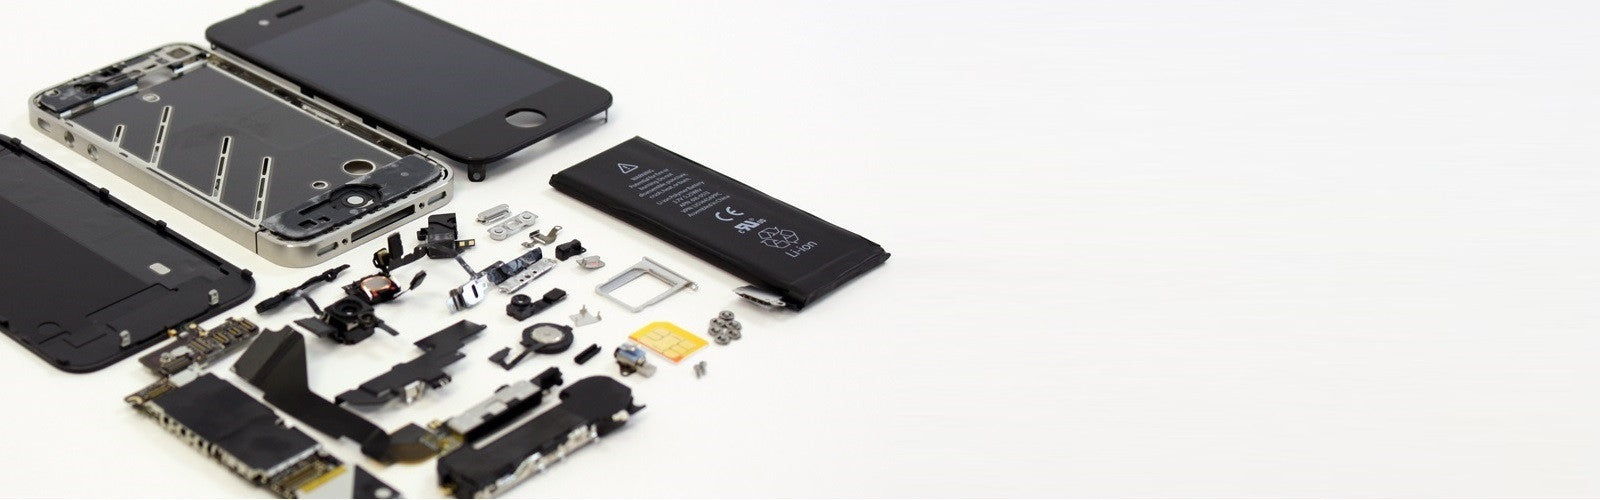 iPhone parts, ipad spares, Samsung bits UK